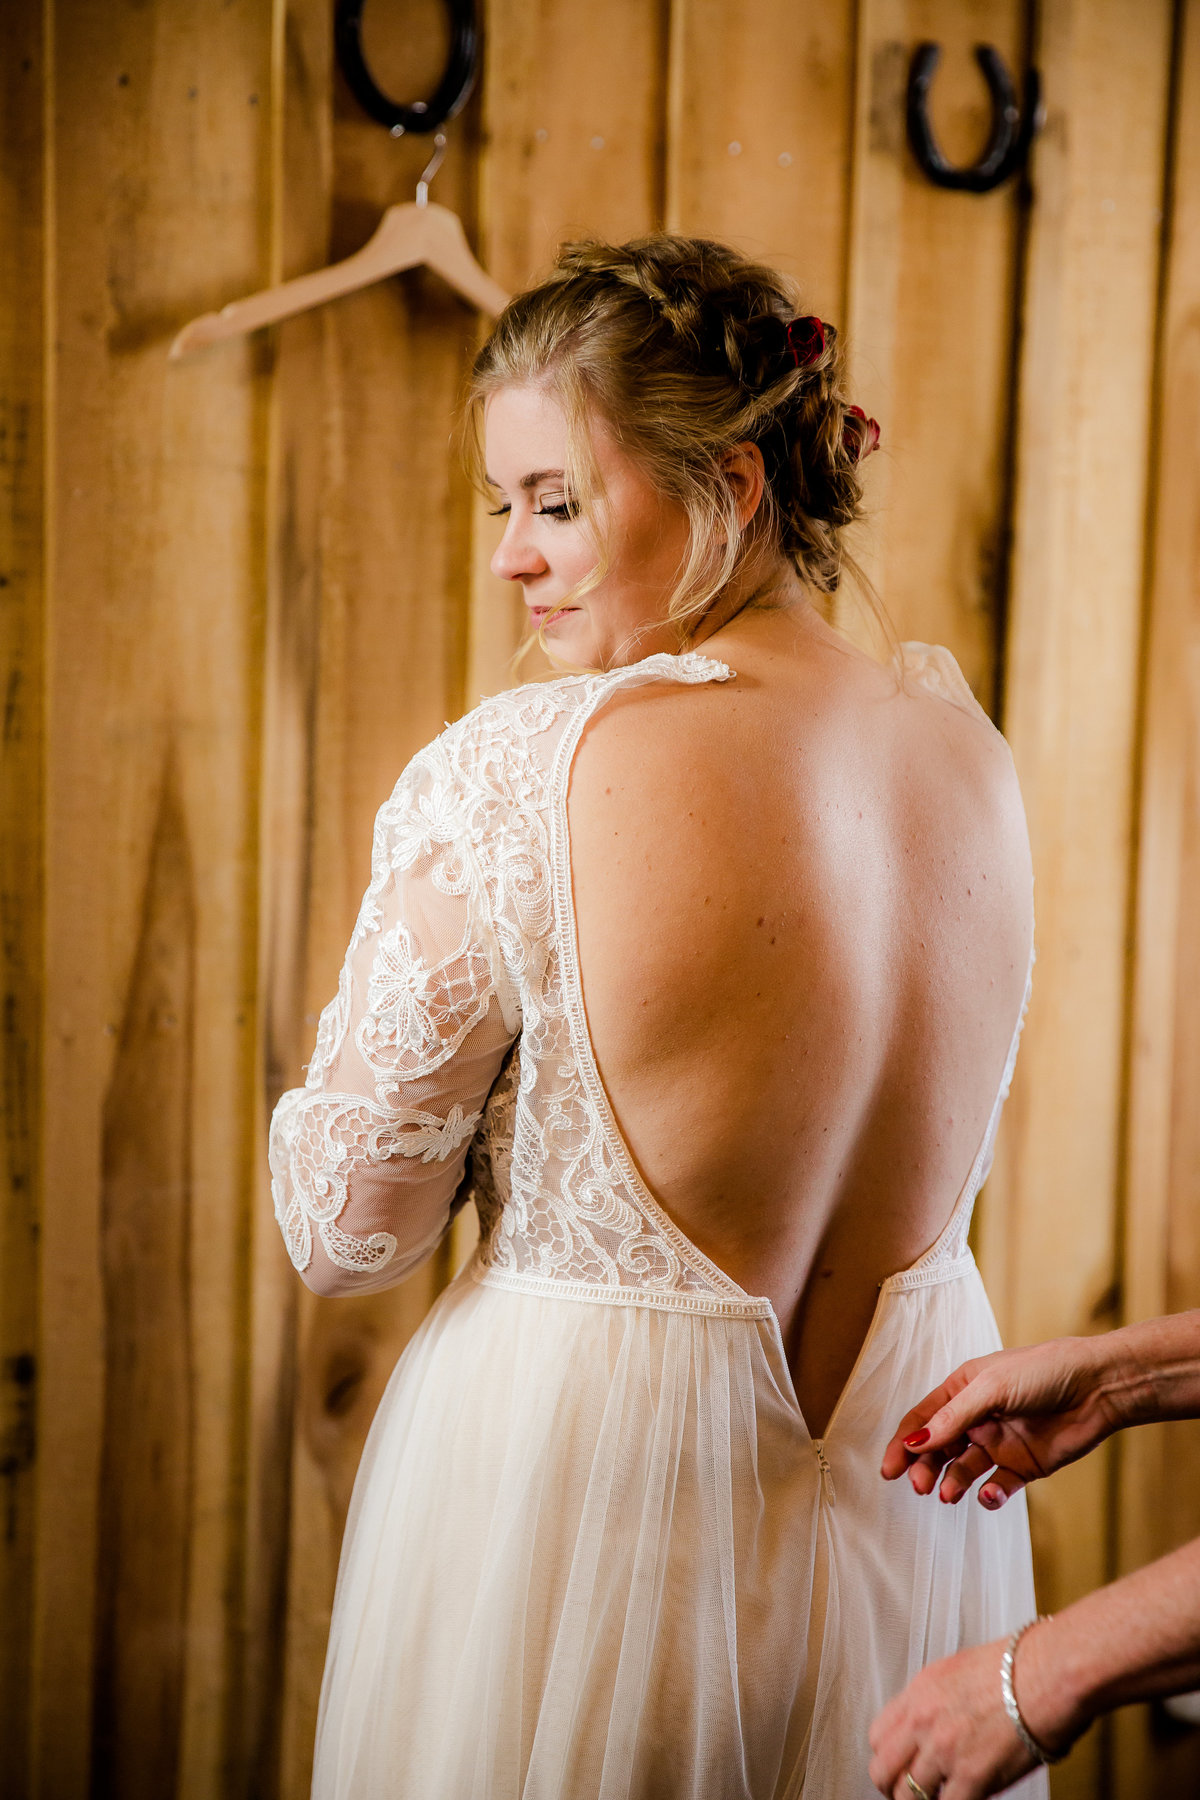 Cactus Creek Barn - Dickson Wedding - Dickson TN - Outdoor Weddings - Outdoor Wedding - Nashville Wedding - Nashville Weddings - Nashville Wedding Photographer - Nashville Wedding Photographers093